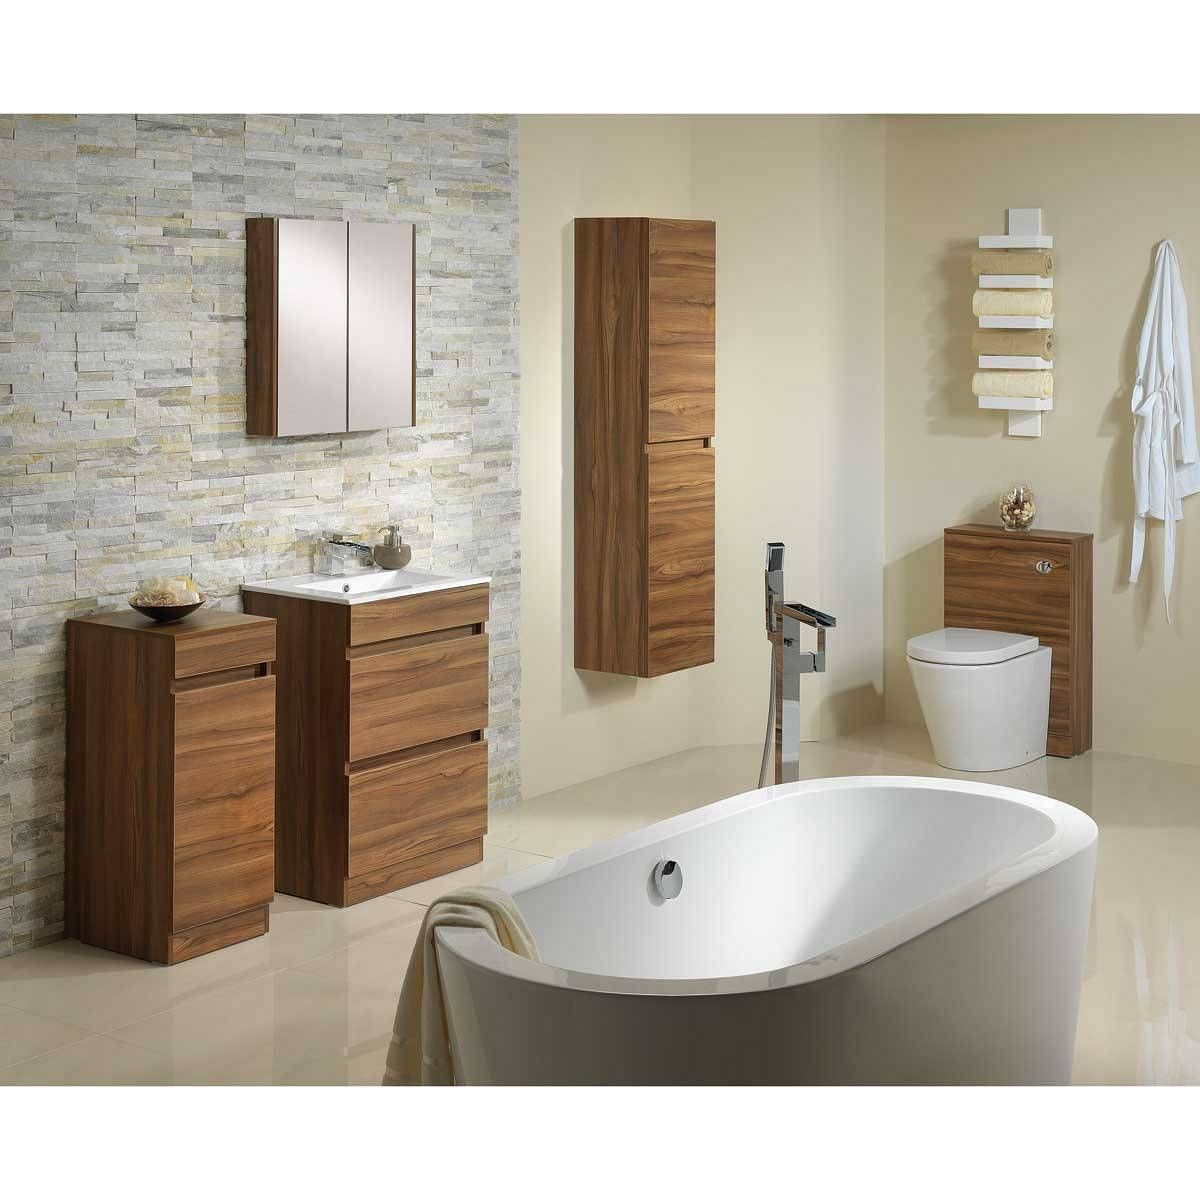 Plan Walnut Floor Mounted 600 Drawer Unit Basin Bathroom Pinterest Walnut Floors Drawer